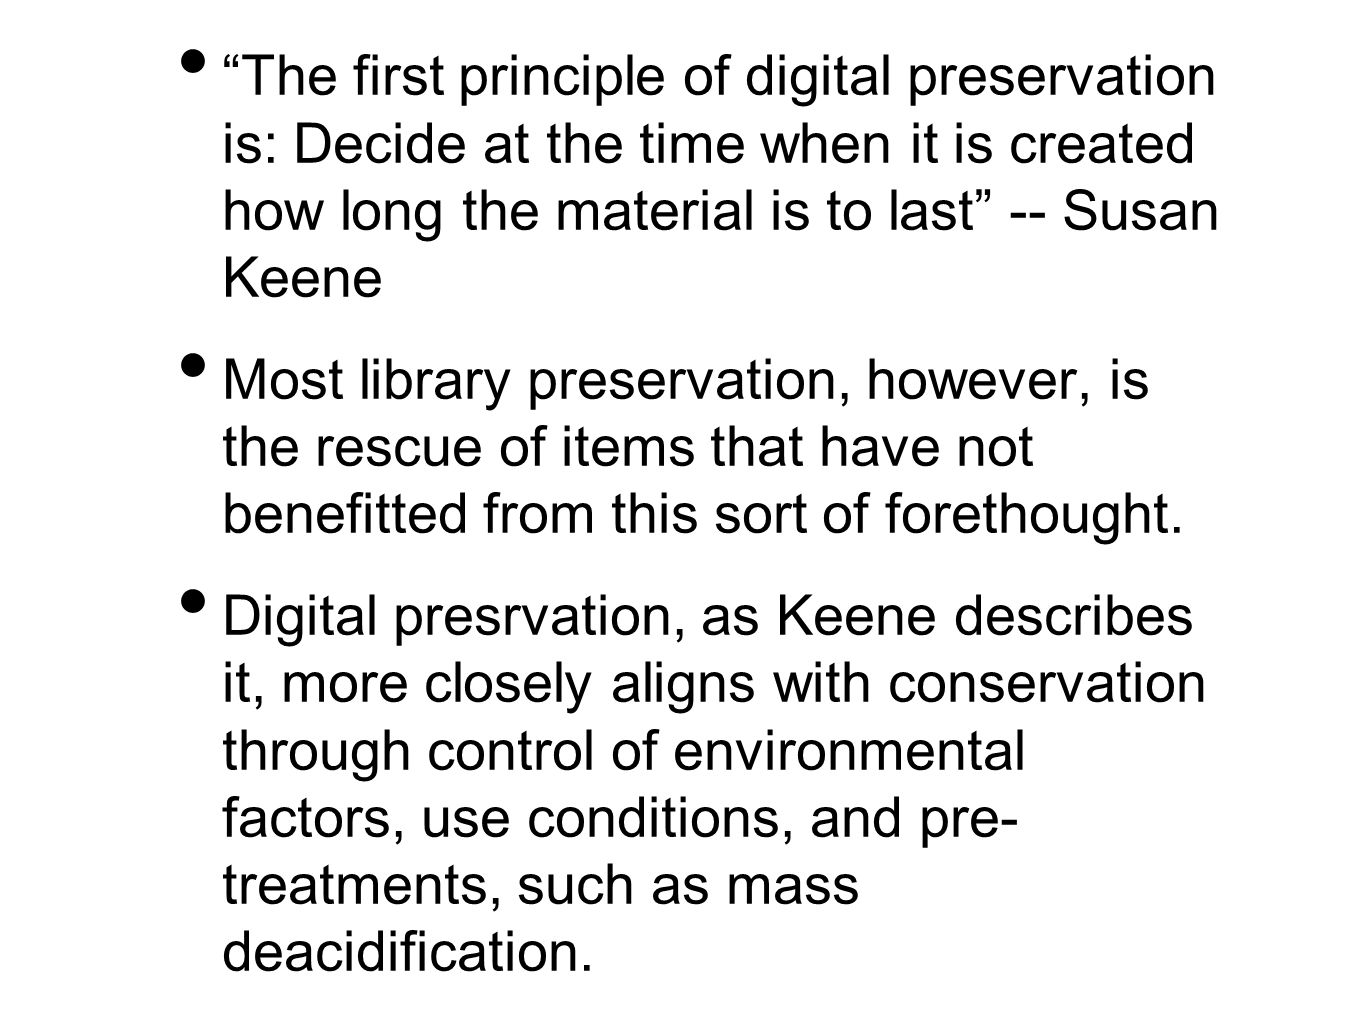 The first principle of digital preservation is: Decide at the time when it is created how long the material is to last -- Susan Keene Most library preservation, however, is the rescue of items that have not benefitted from this sort of forethought.